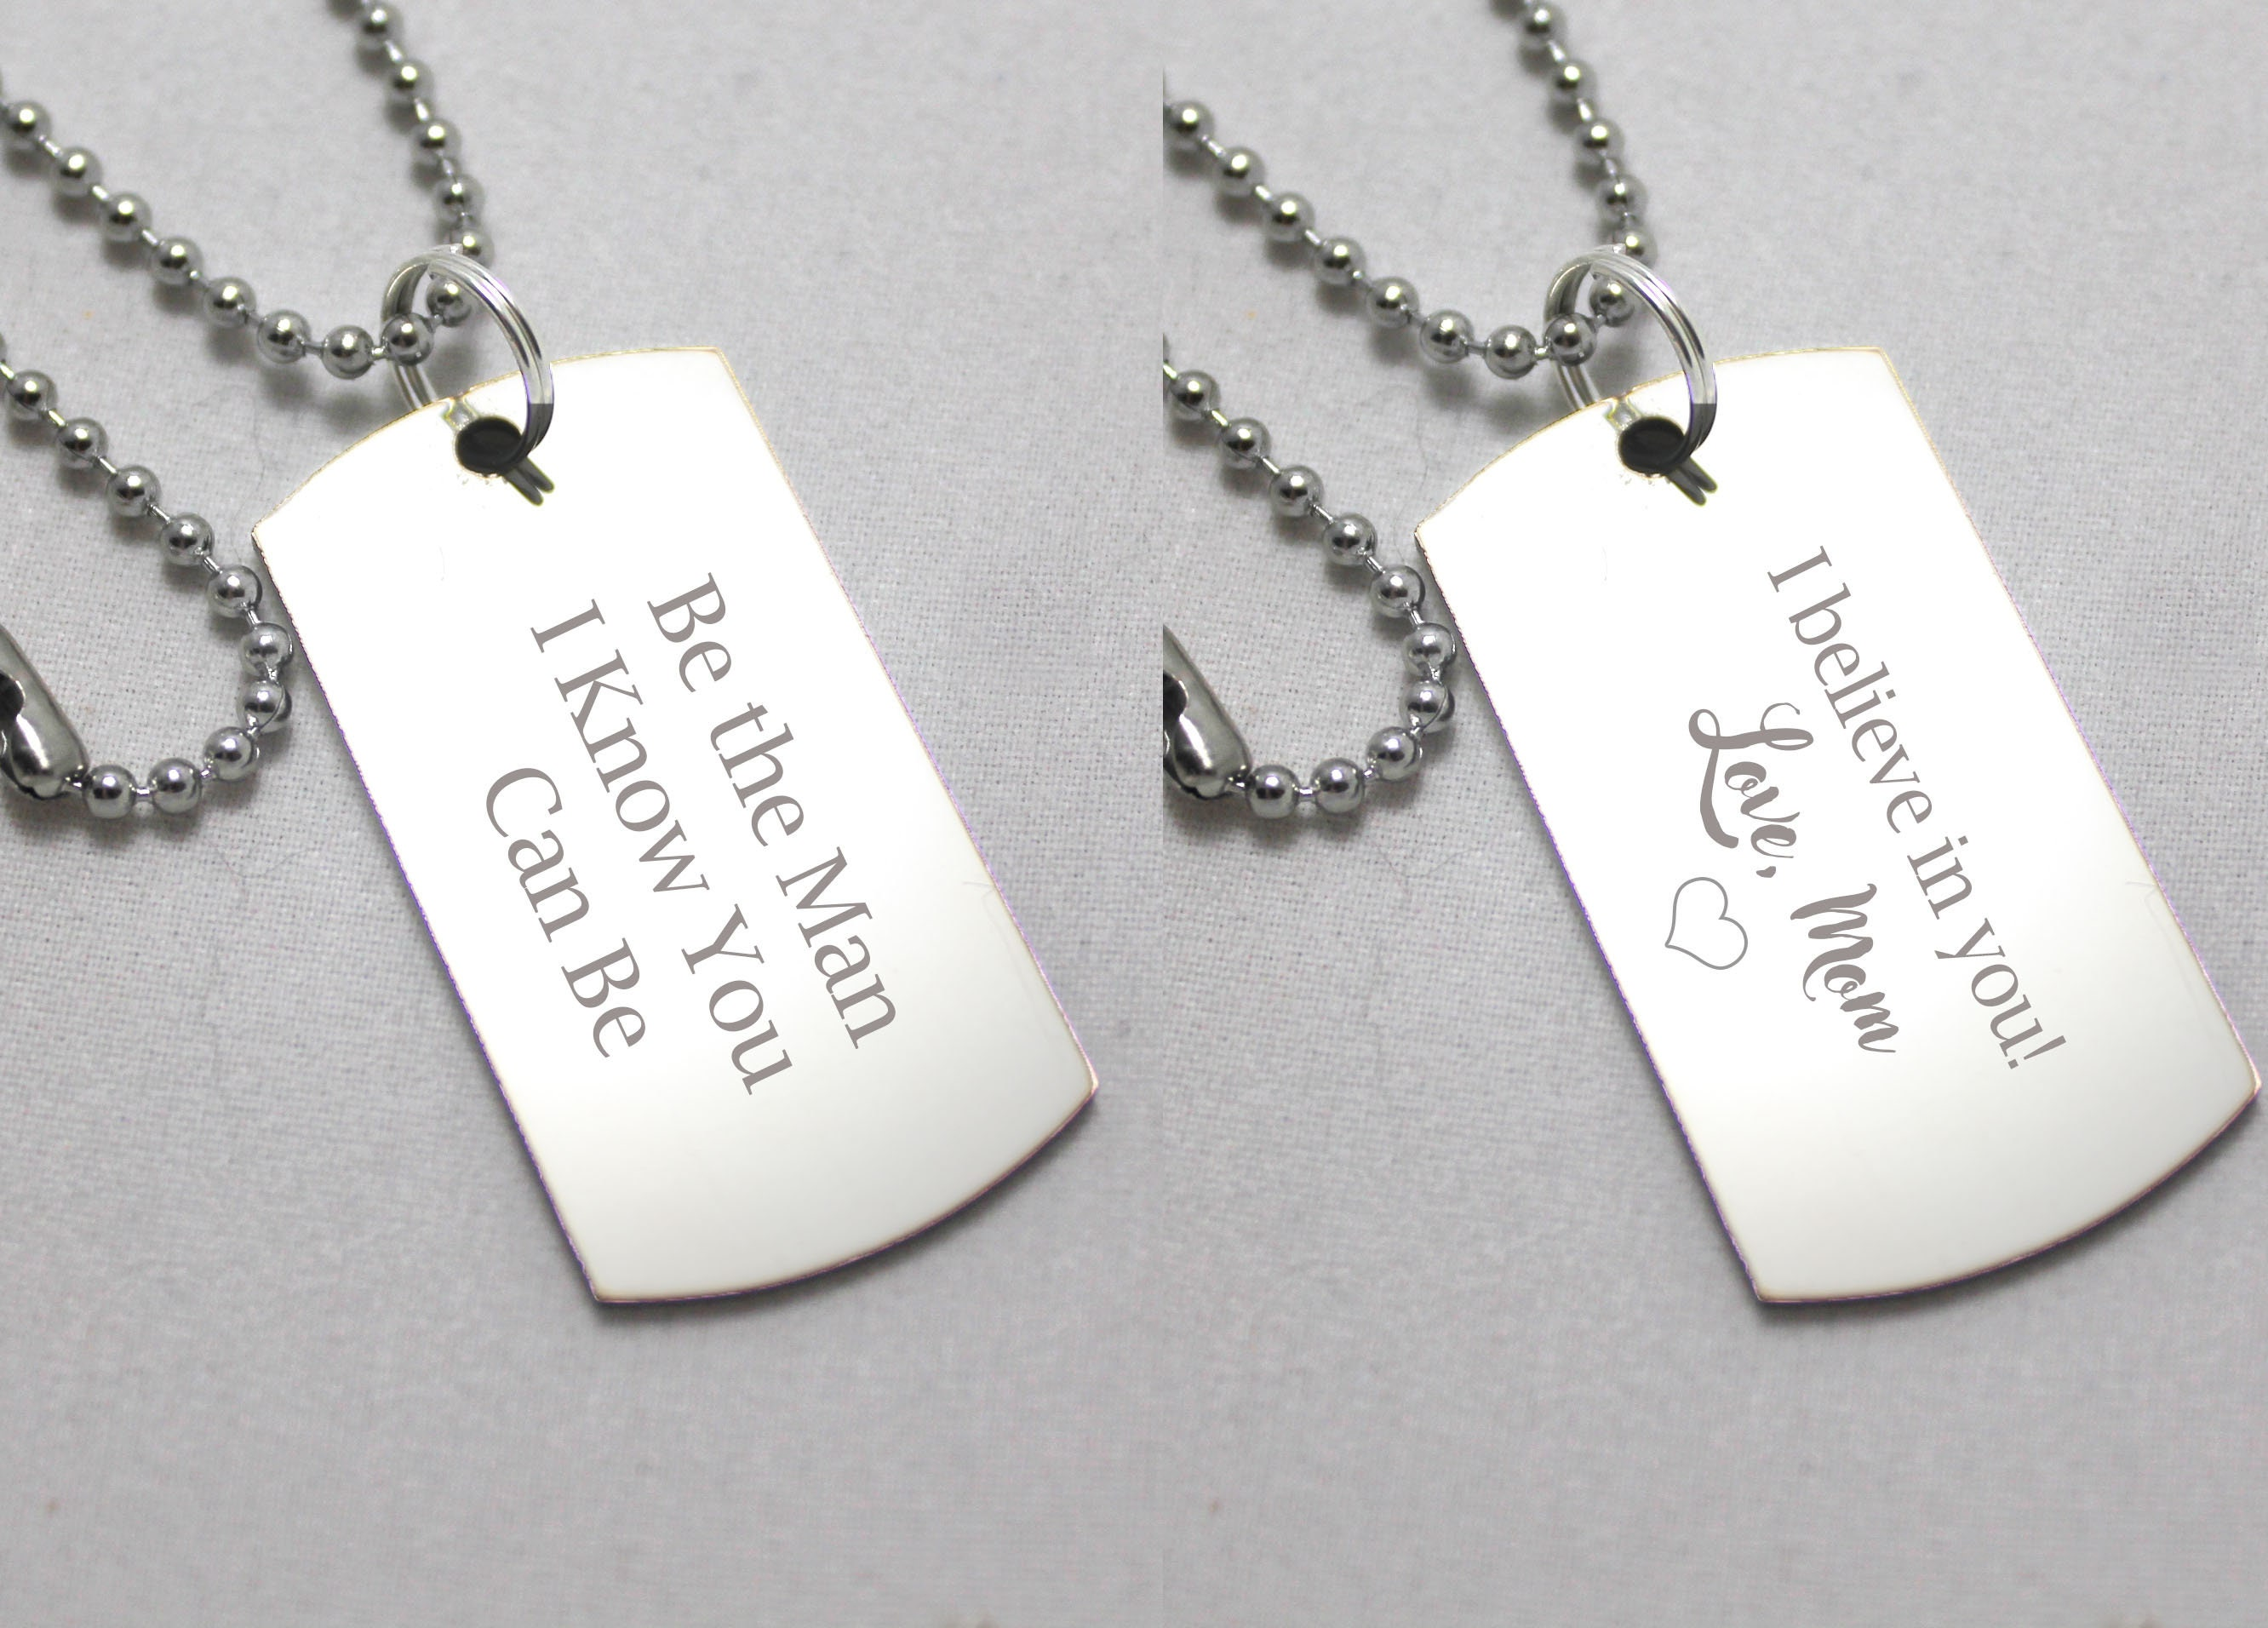 Custom Photo Loved One Memorial Dog Tag Necklace Key Chain Personalized Jewelry